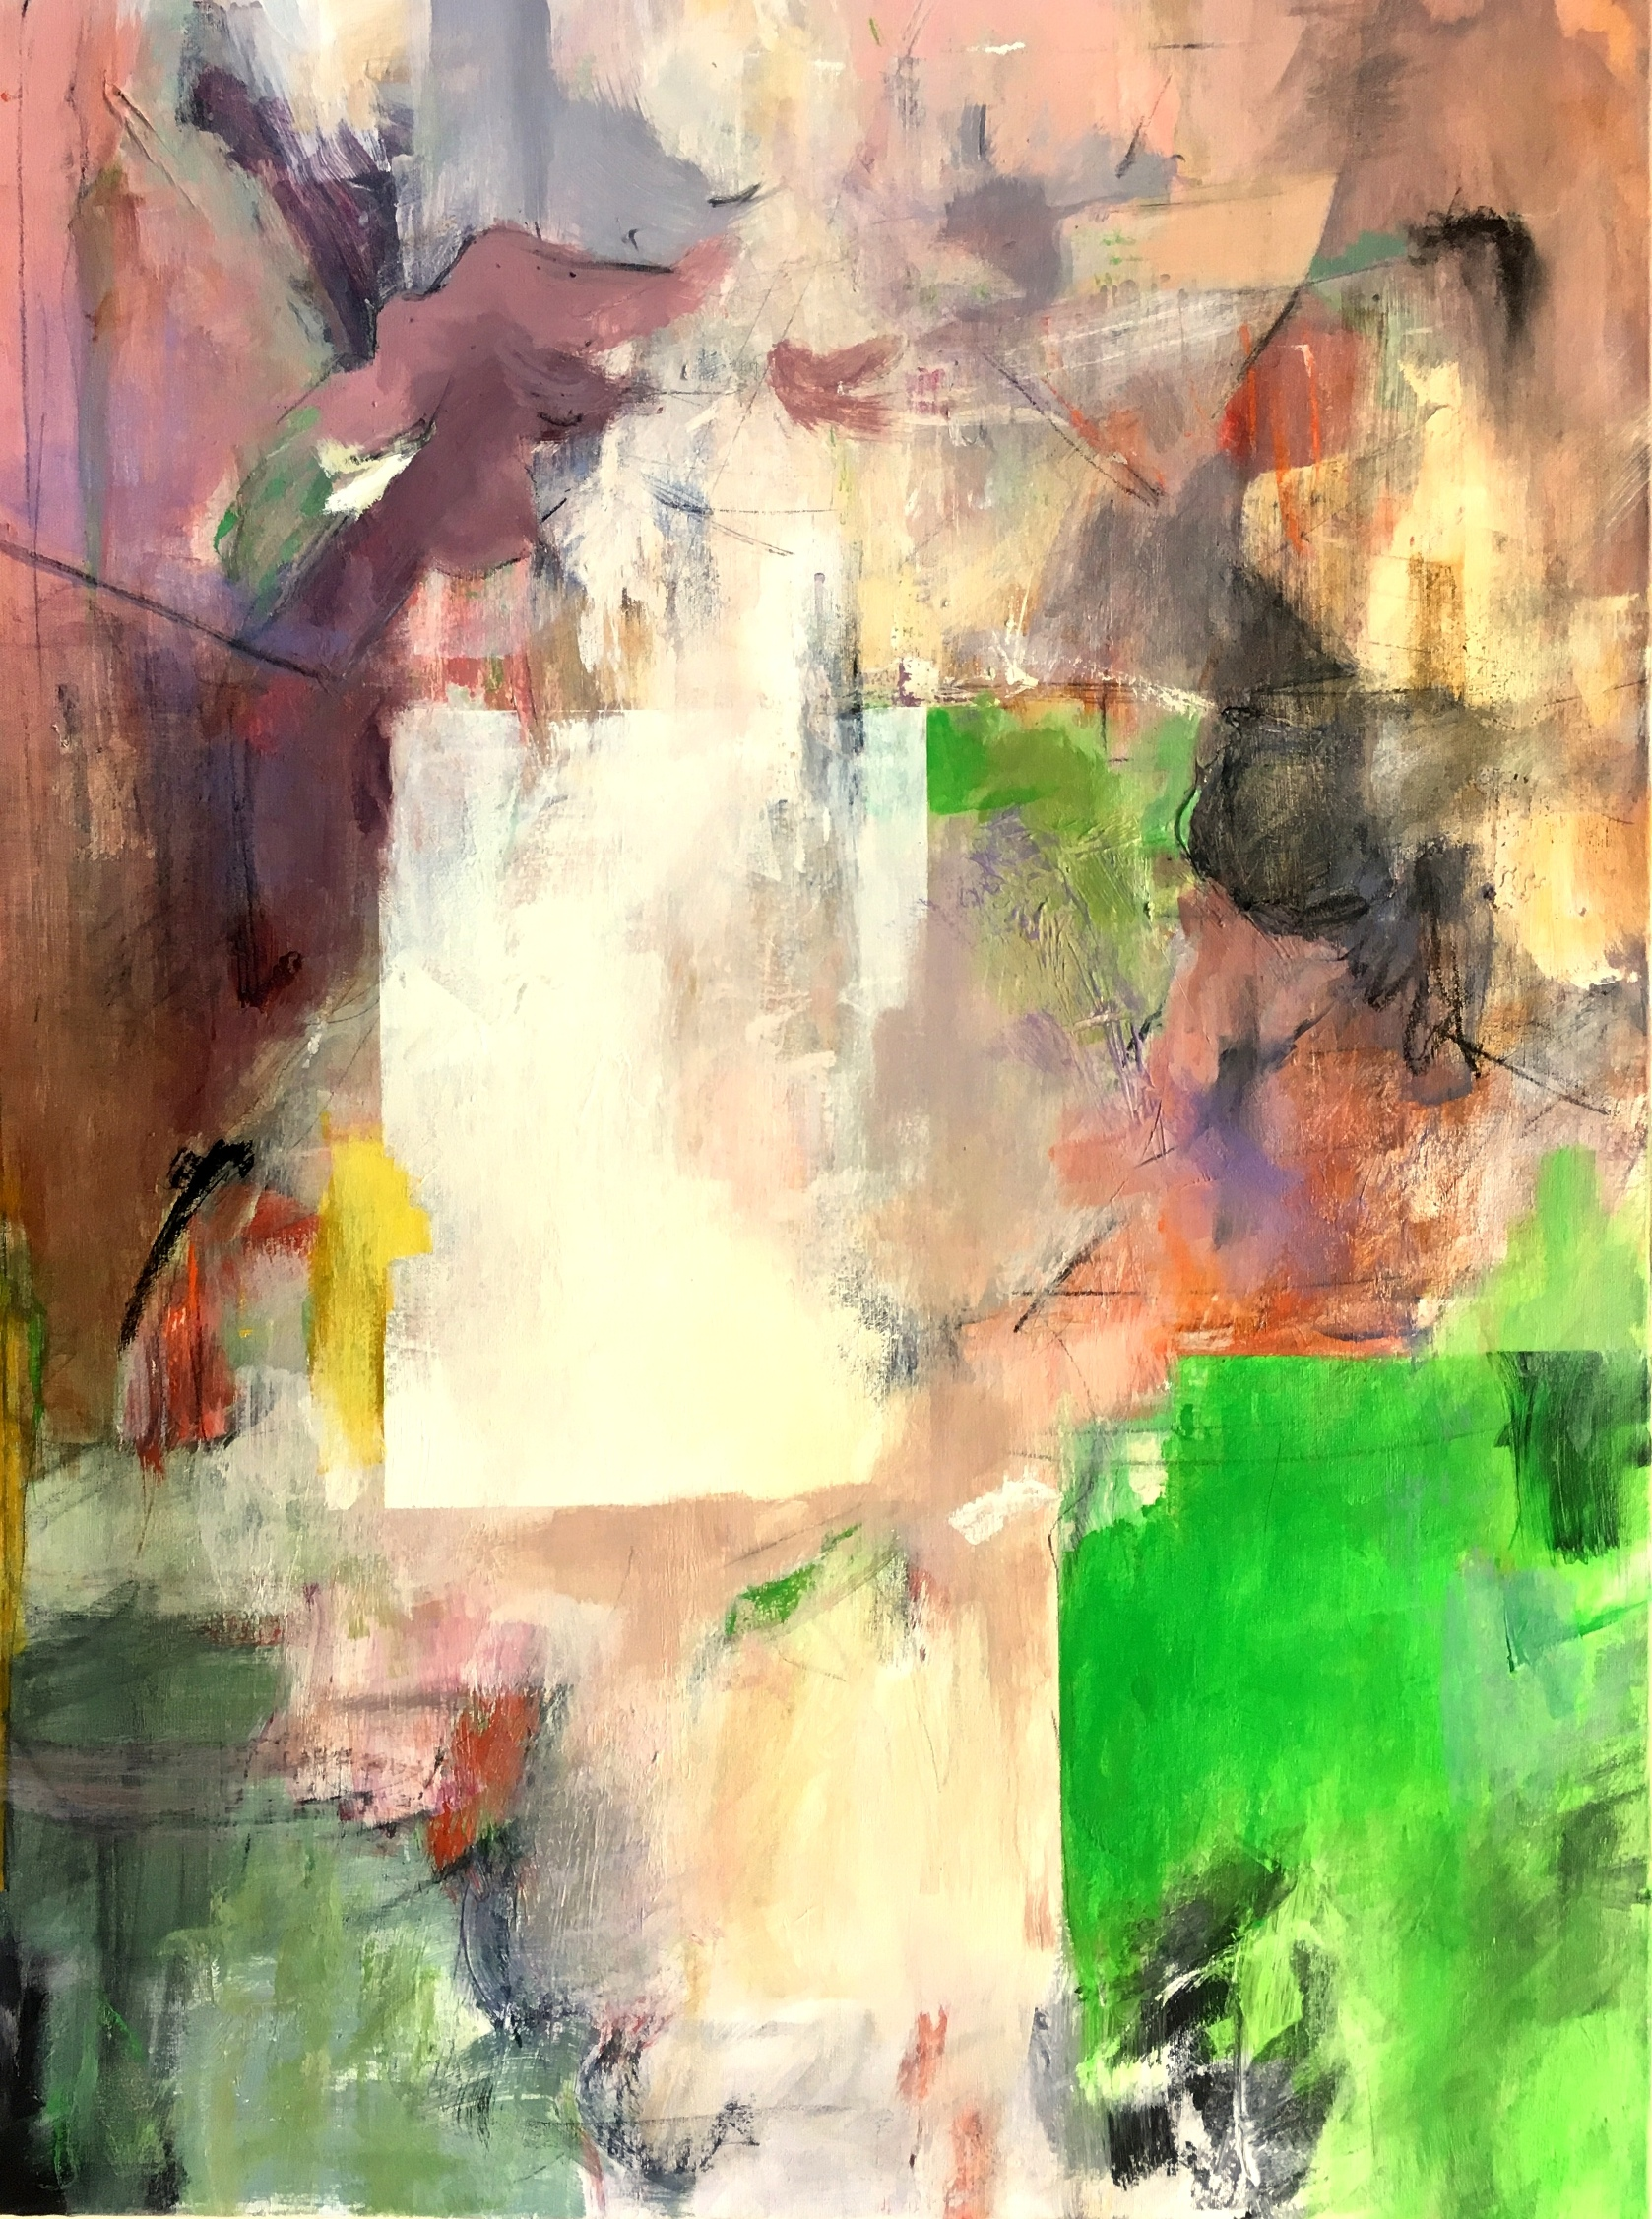 Jay Peterzell - Sinbad - acrylic and charcoal on canvas - 40 x 30